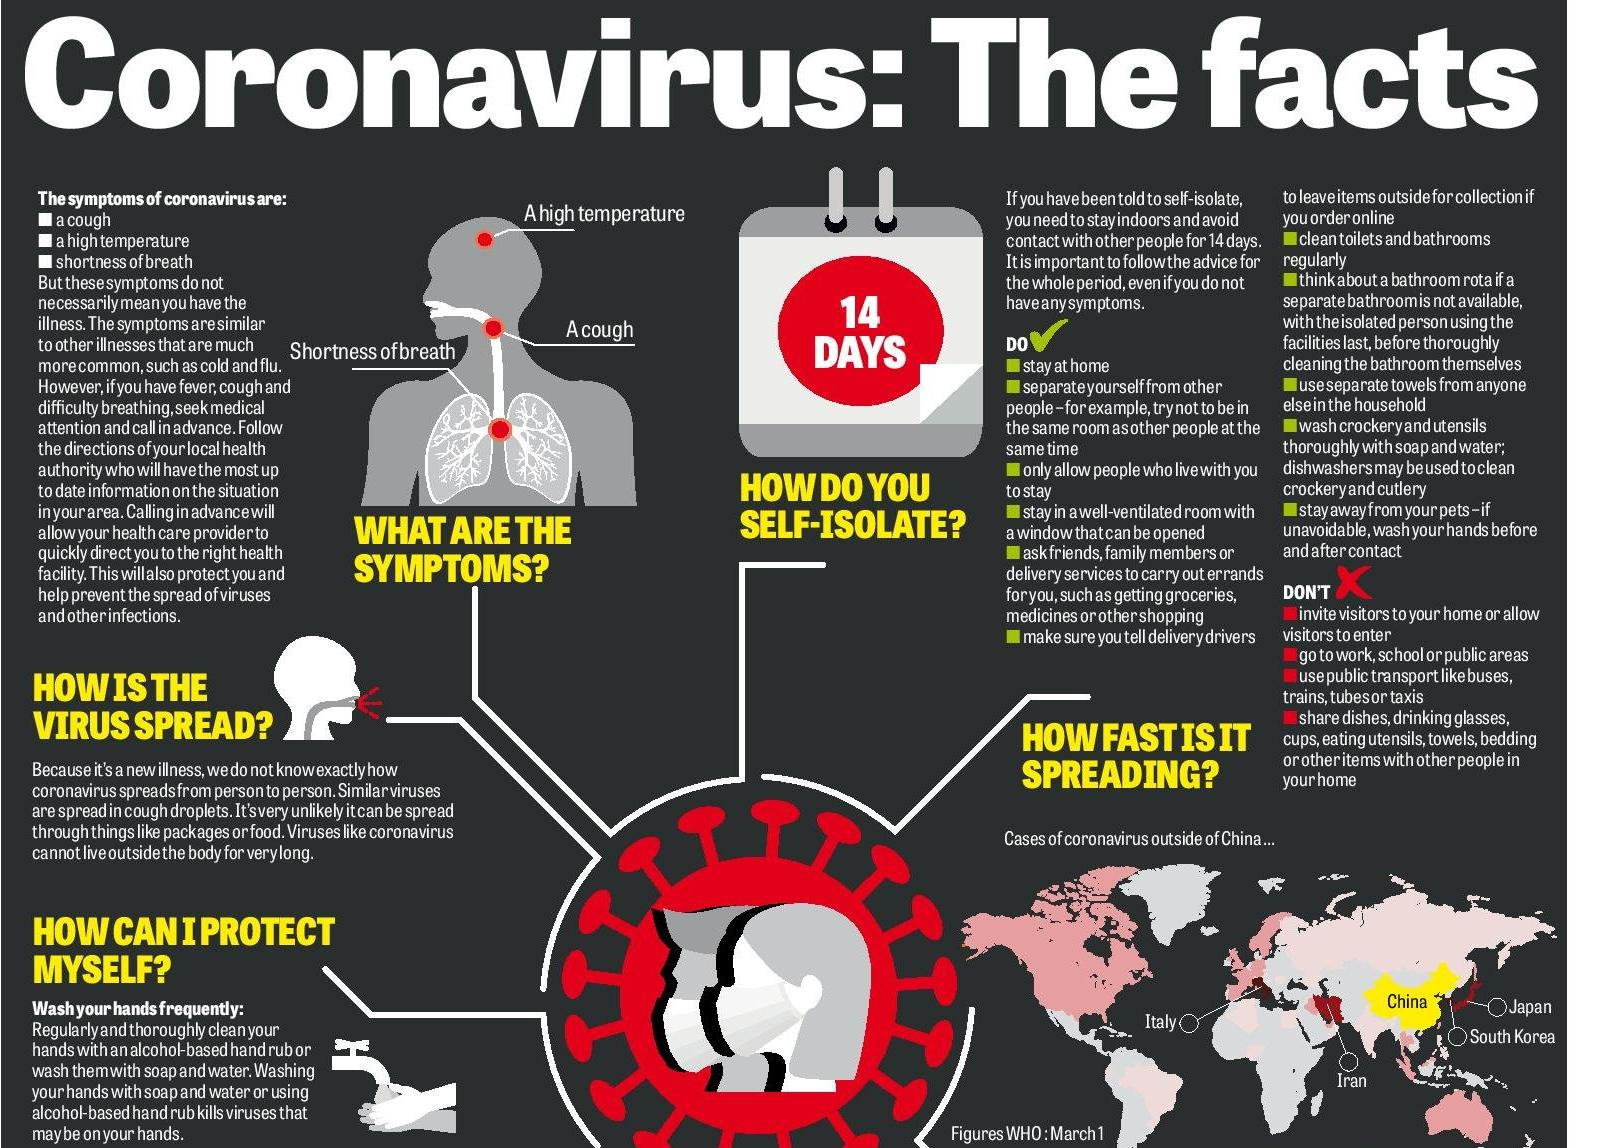 Policy-makers have some hard choices ahead as coronavirus ...